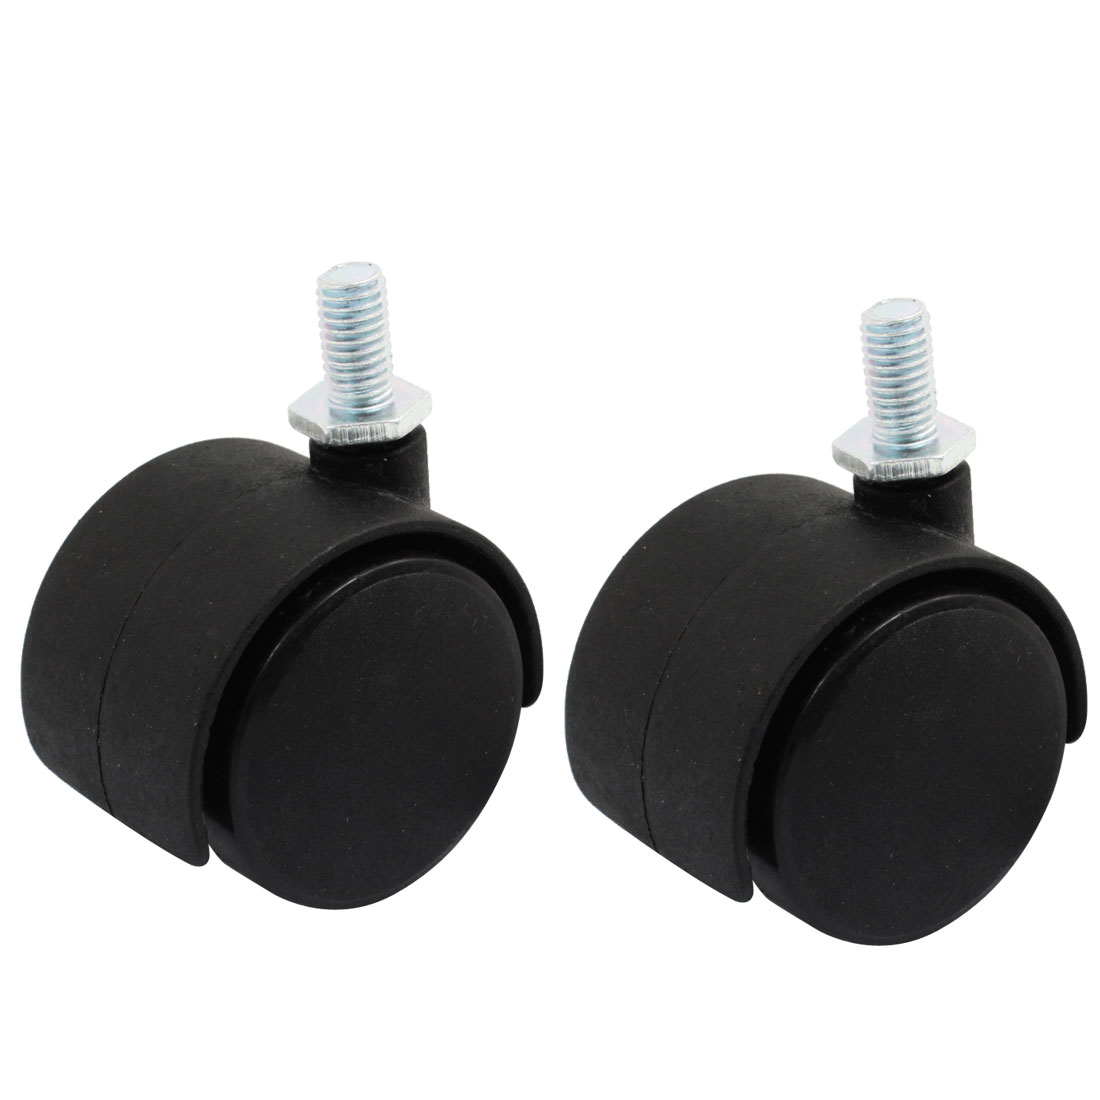 "Luggage Case Carts 8mm Thread Dia 1.5"" Round Rotary Swivel Wheel Caster Black 2pcs"